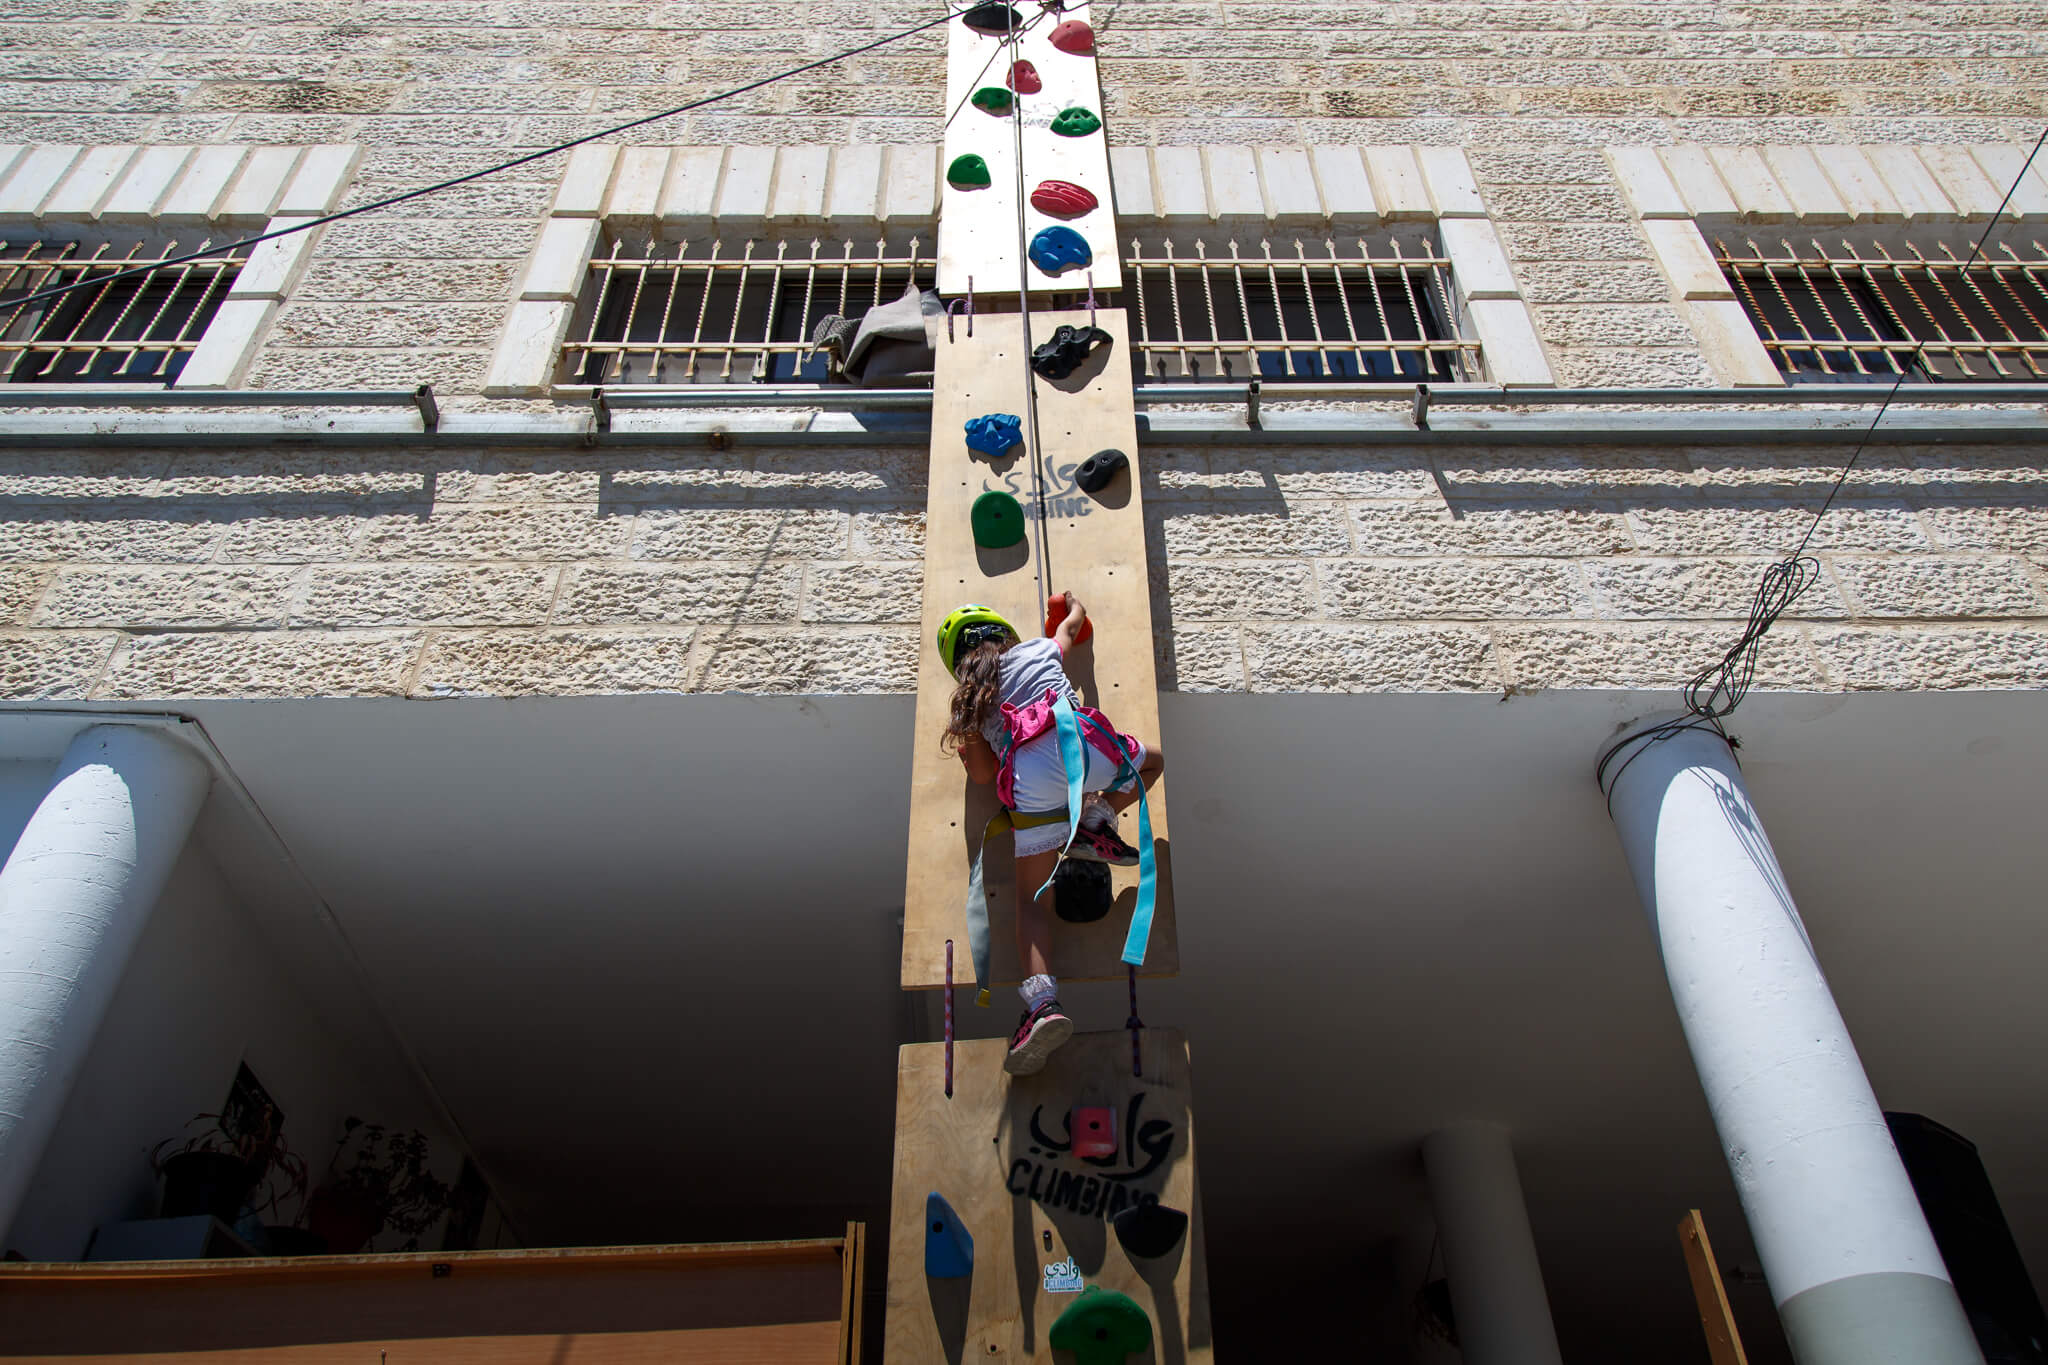 Young girl takes on the 30-foot mobile rock climbing wall at the Shu'fat refugee camp located on the outskirts of Jerusalem. (Photo: Miriam Deprez)